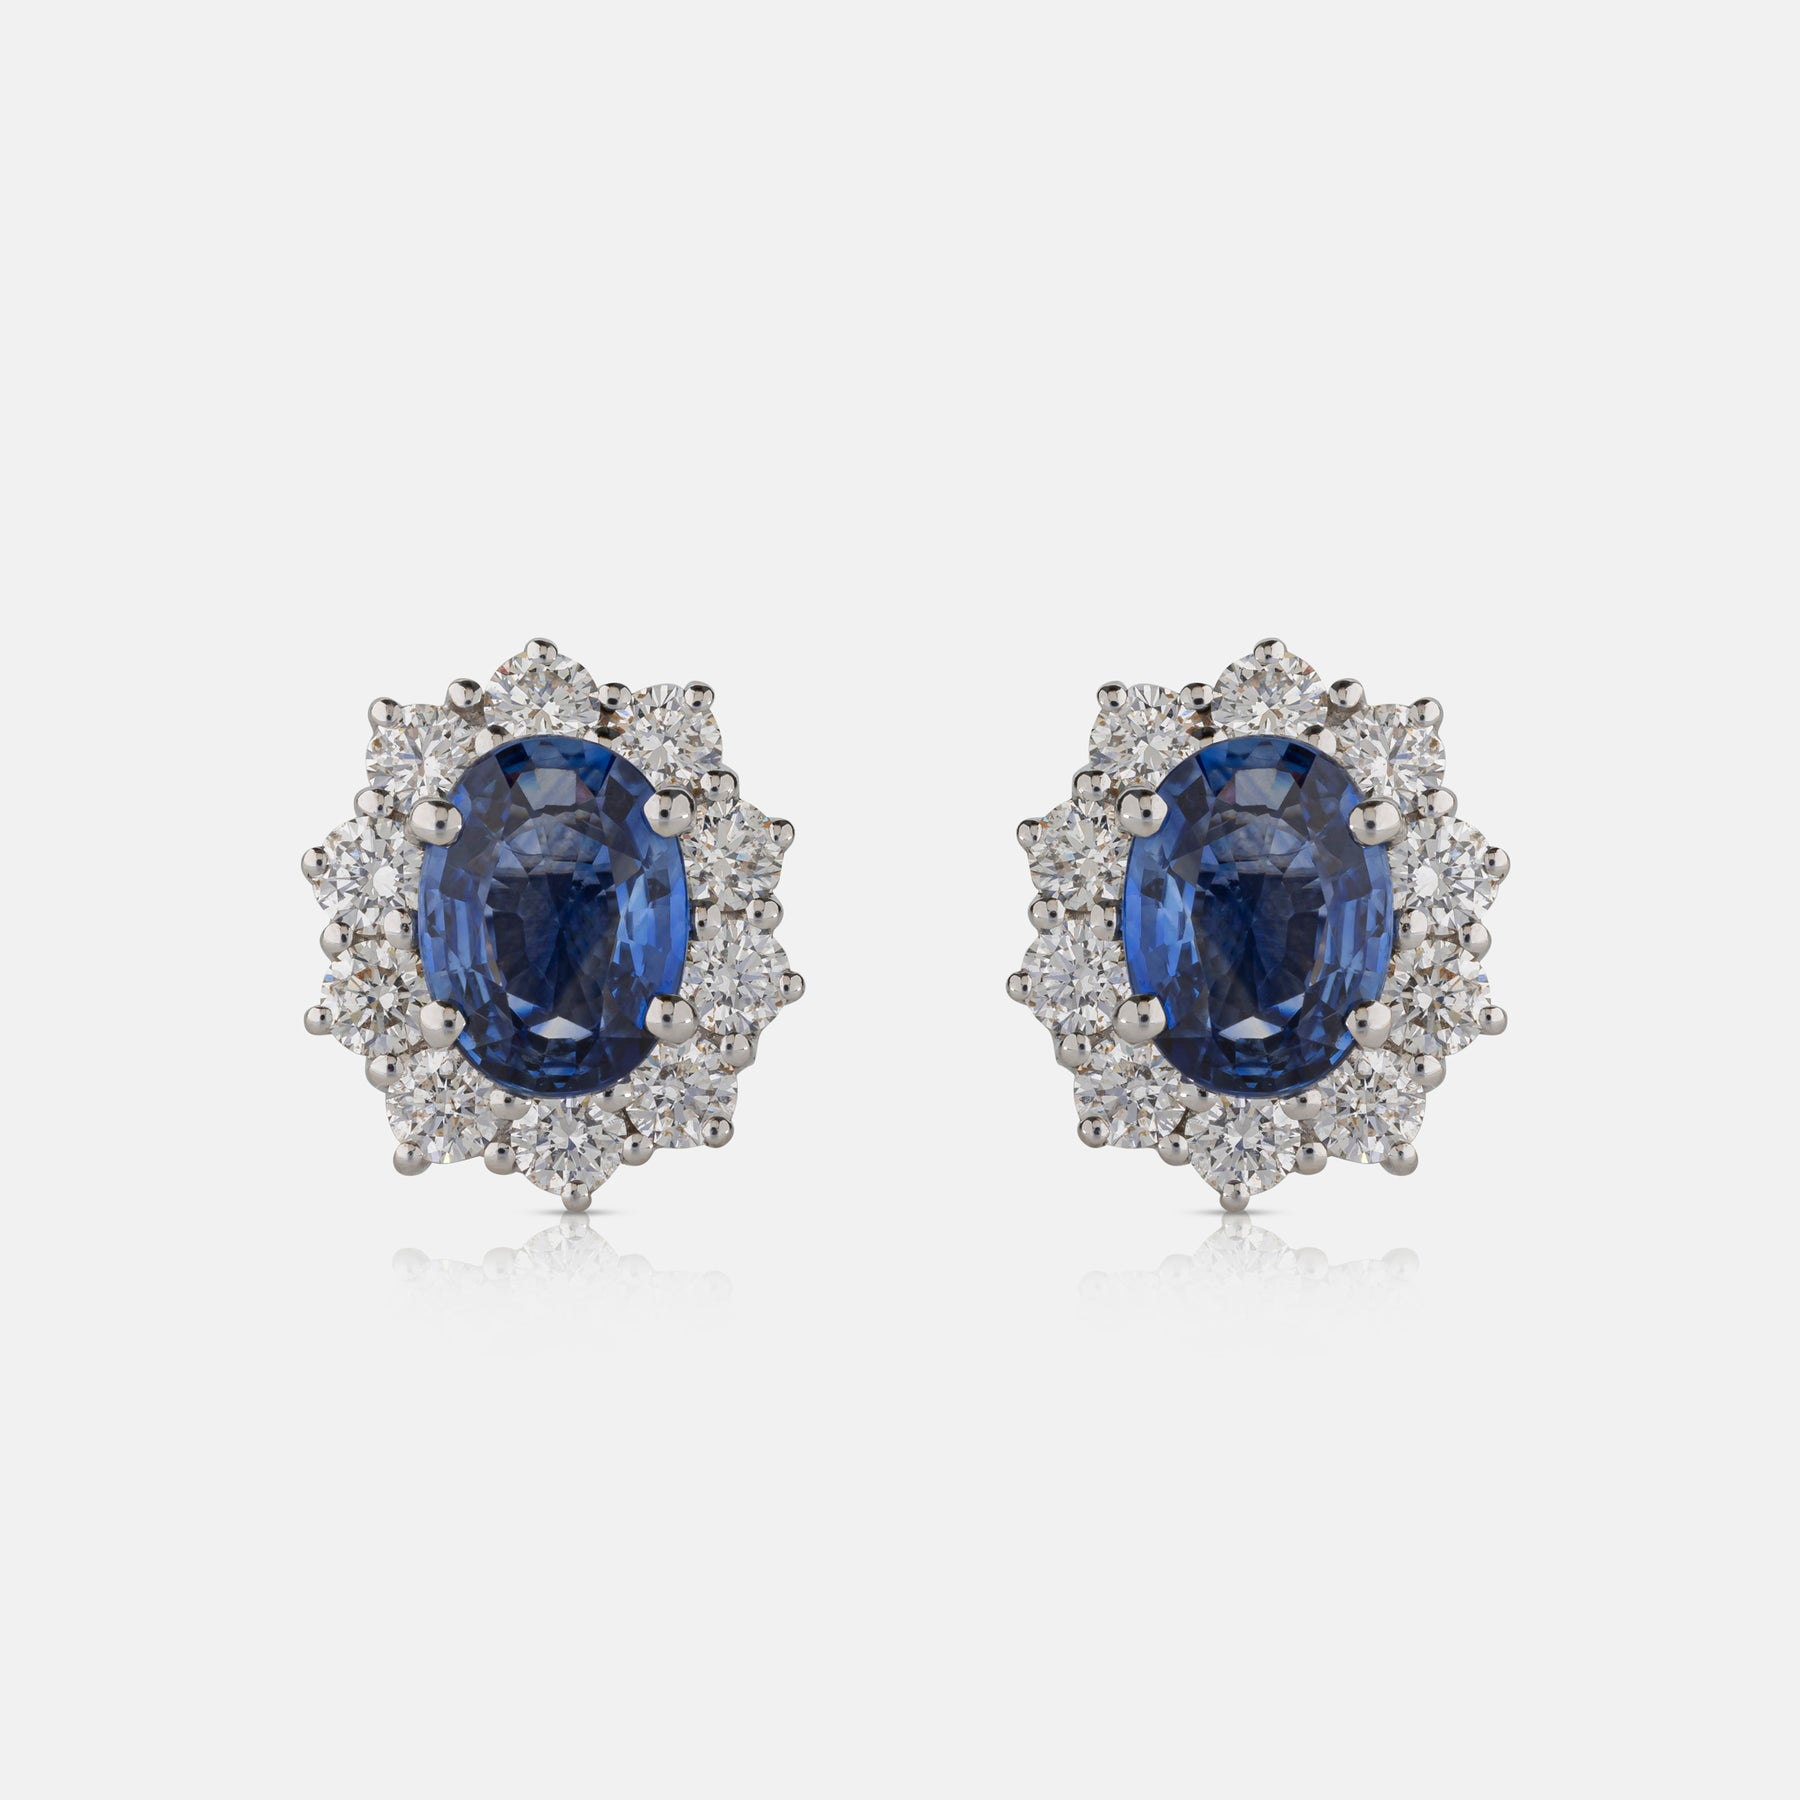 2.49ct Oval Saphire Stone,<br> Diamond Cluster Earring,<br> 18ct White Gold